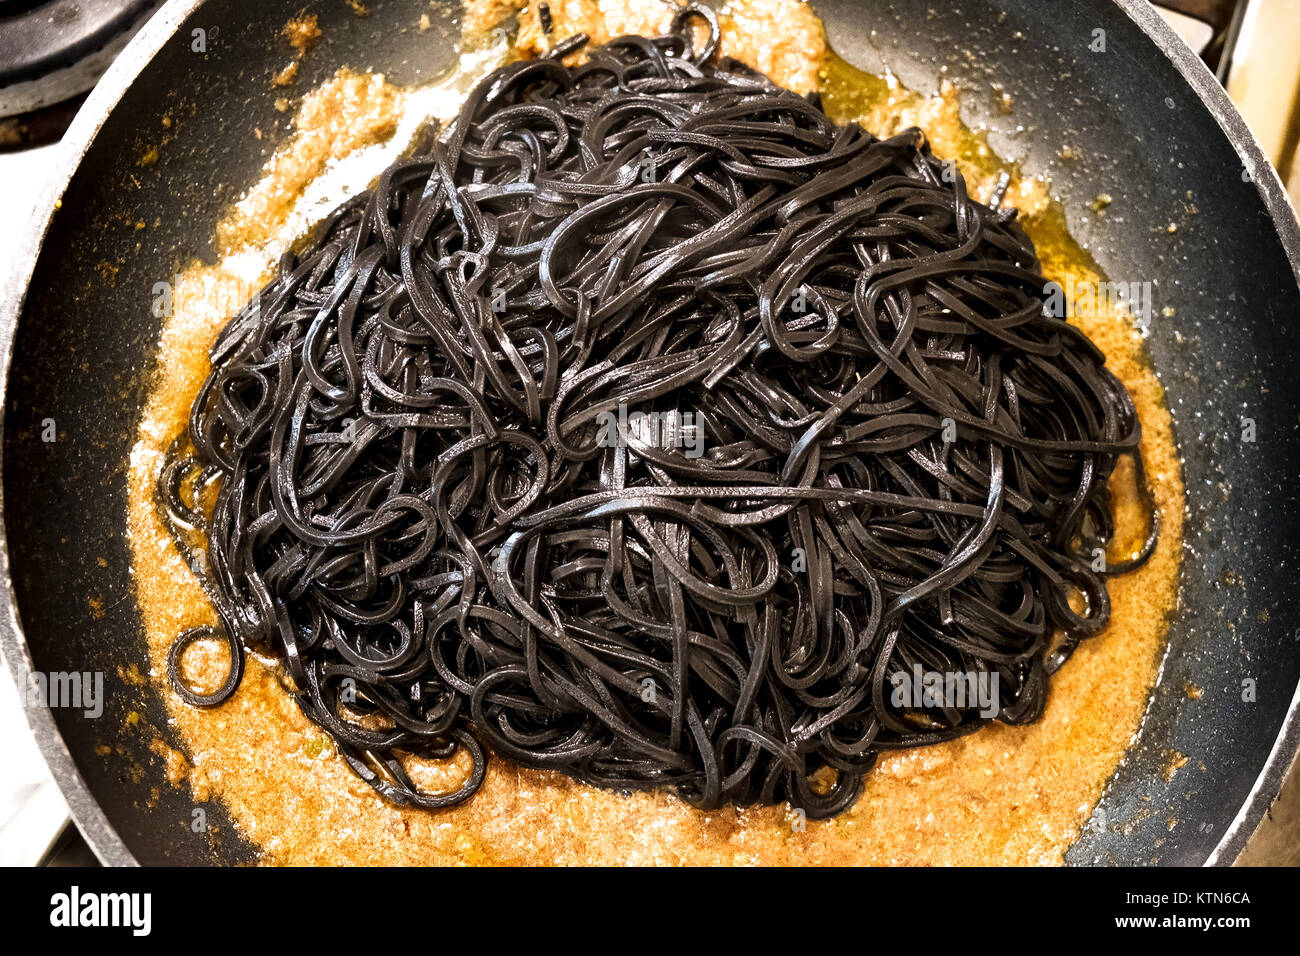 black pasta squid ink pan up view italian taglierini al nero di seppia - Stock Image